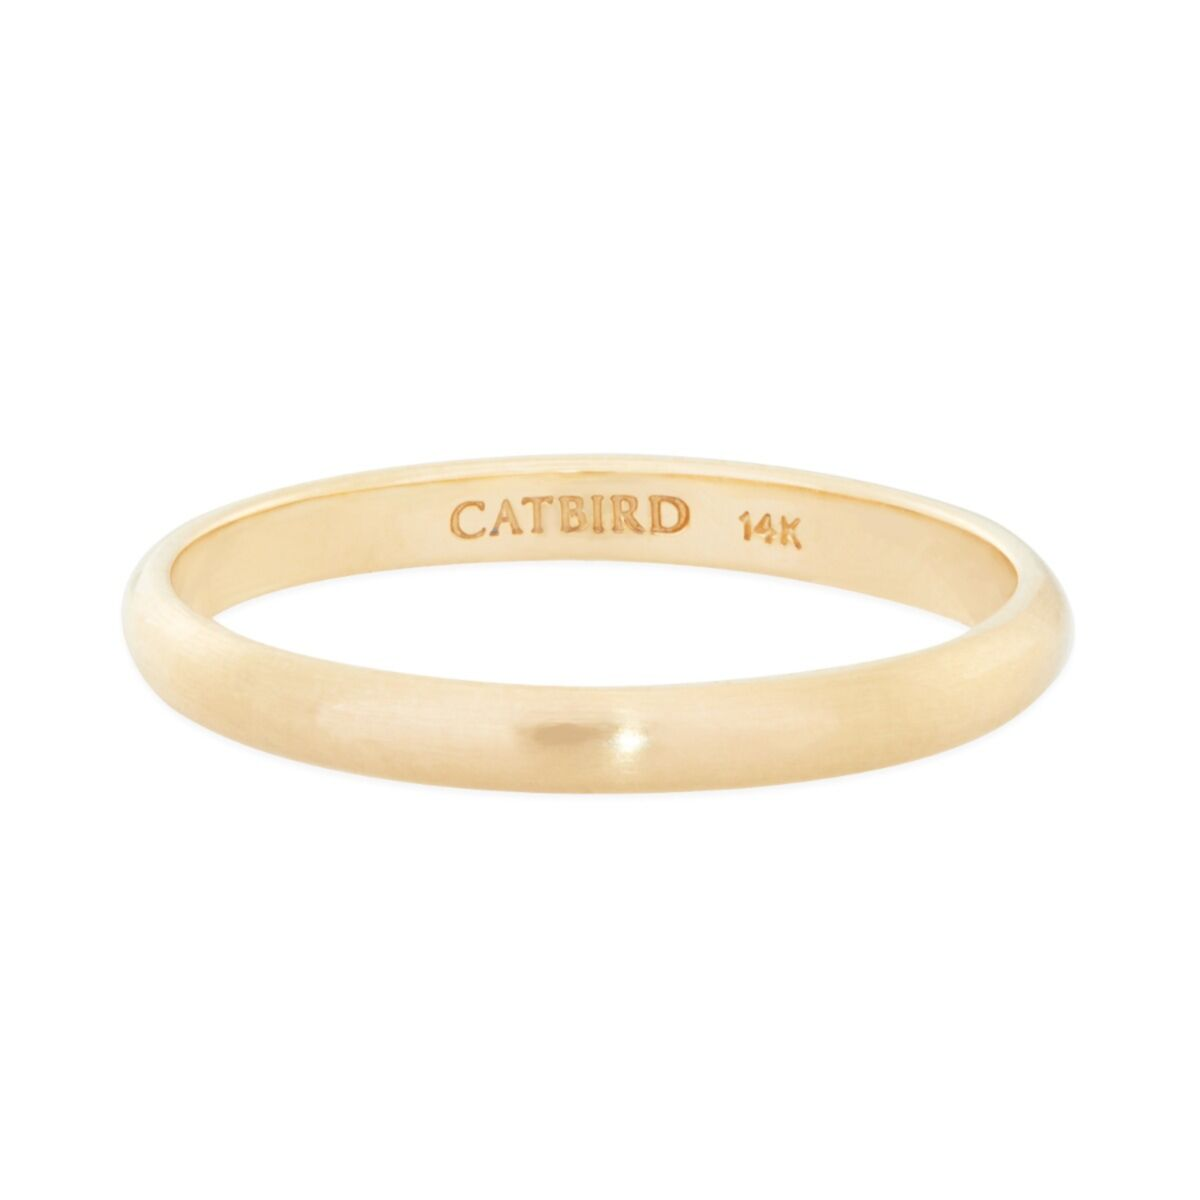 Catbird Classic Wedding Bands, Half Round Band, 2mm image